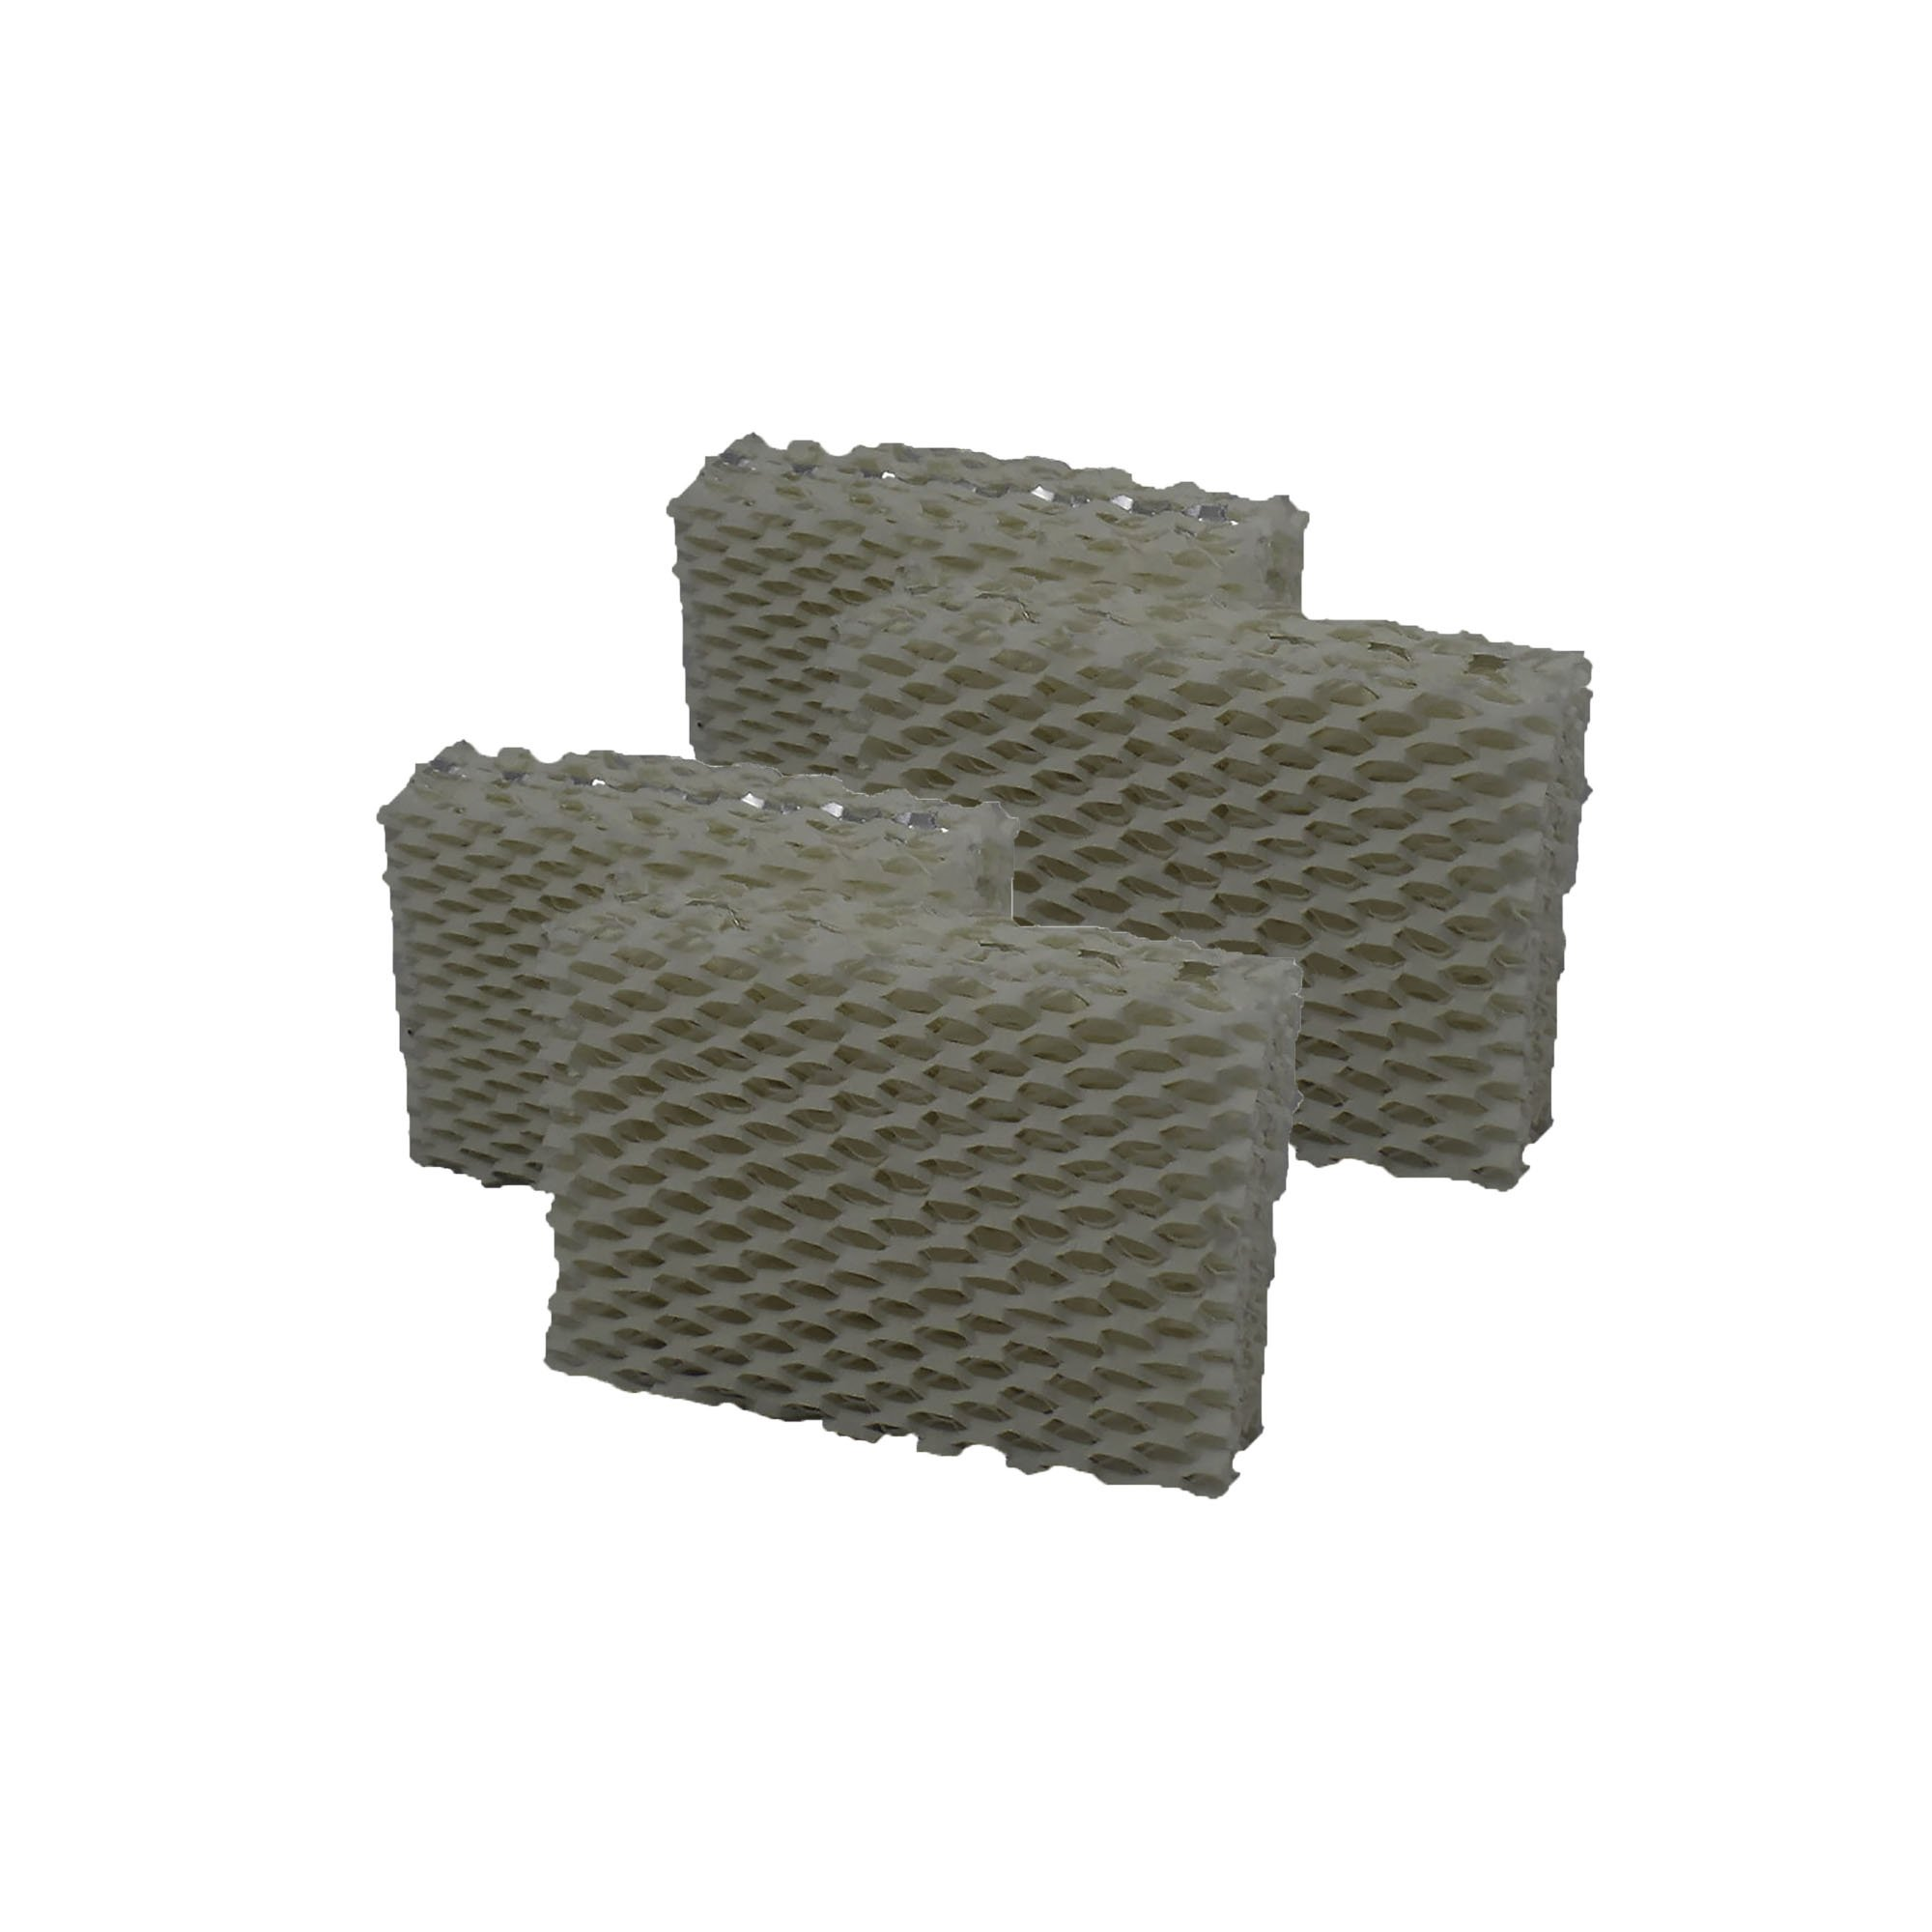 4 PACK Air Filter Factory Compatible Replacement For Duracraft DH830 DH832 Wick Filters